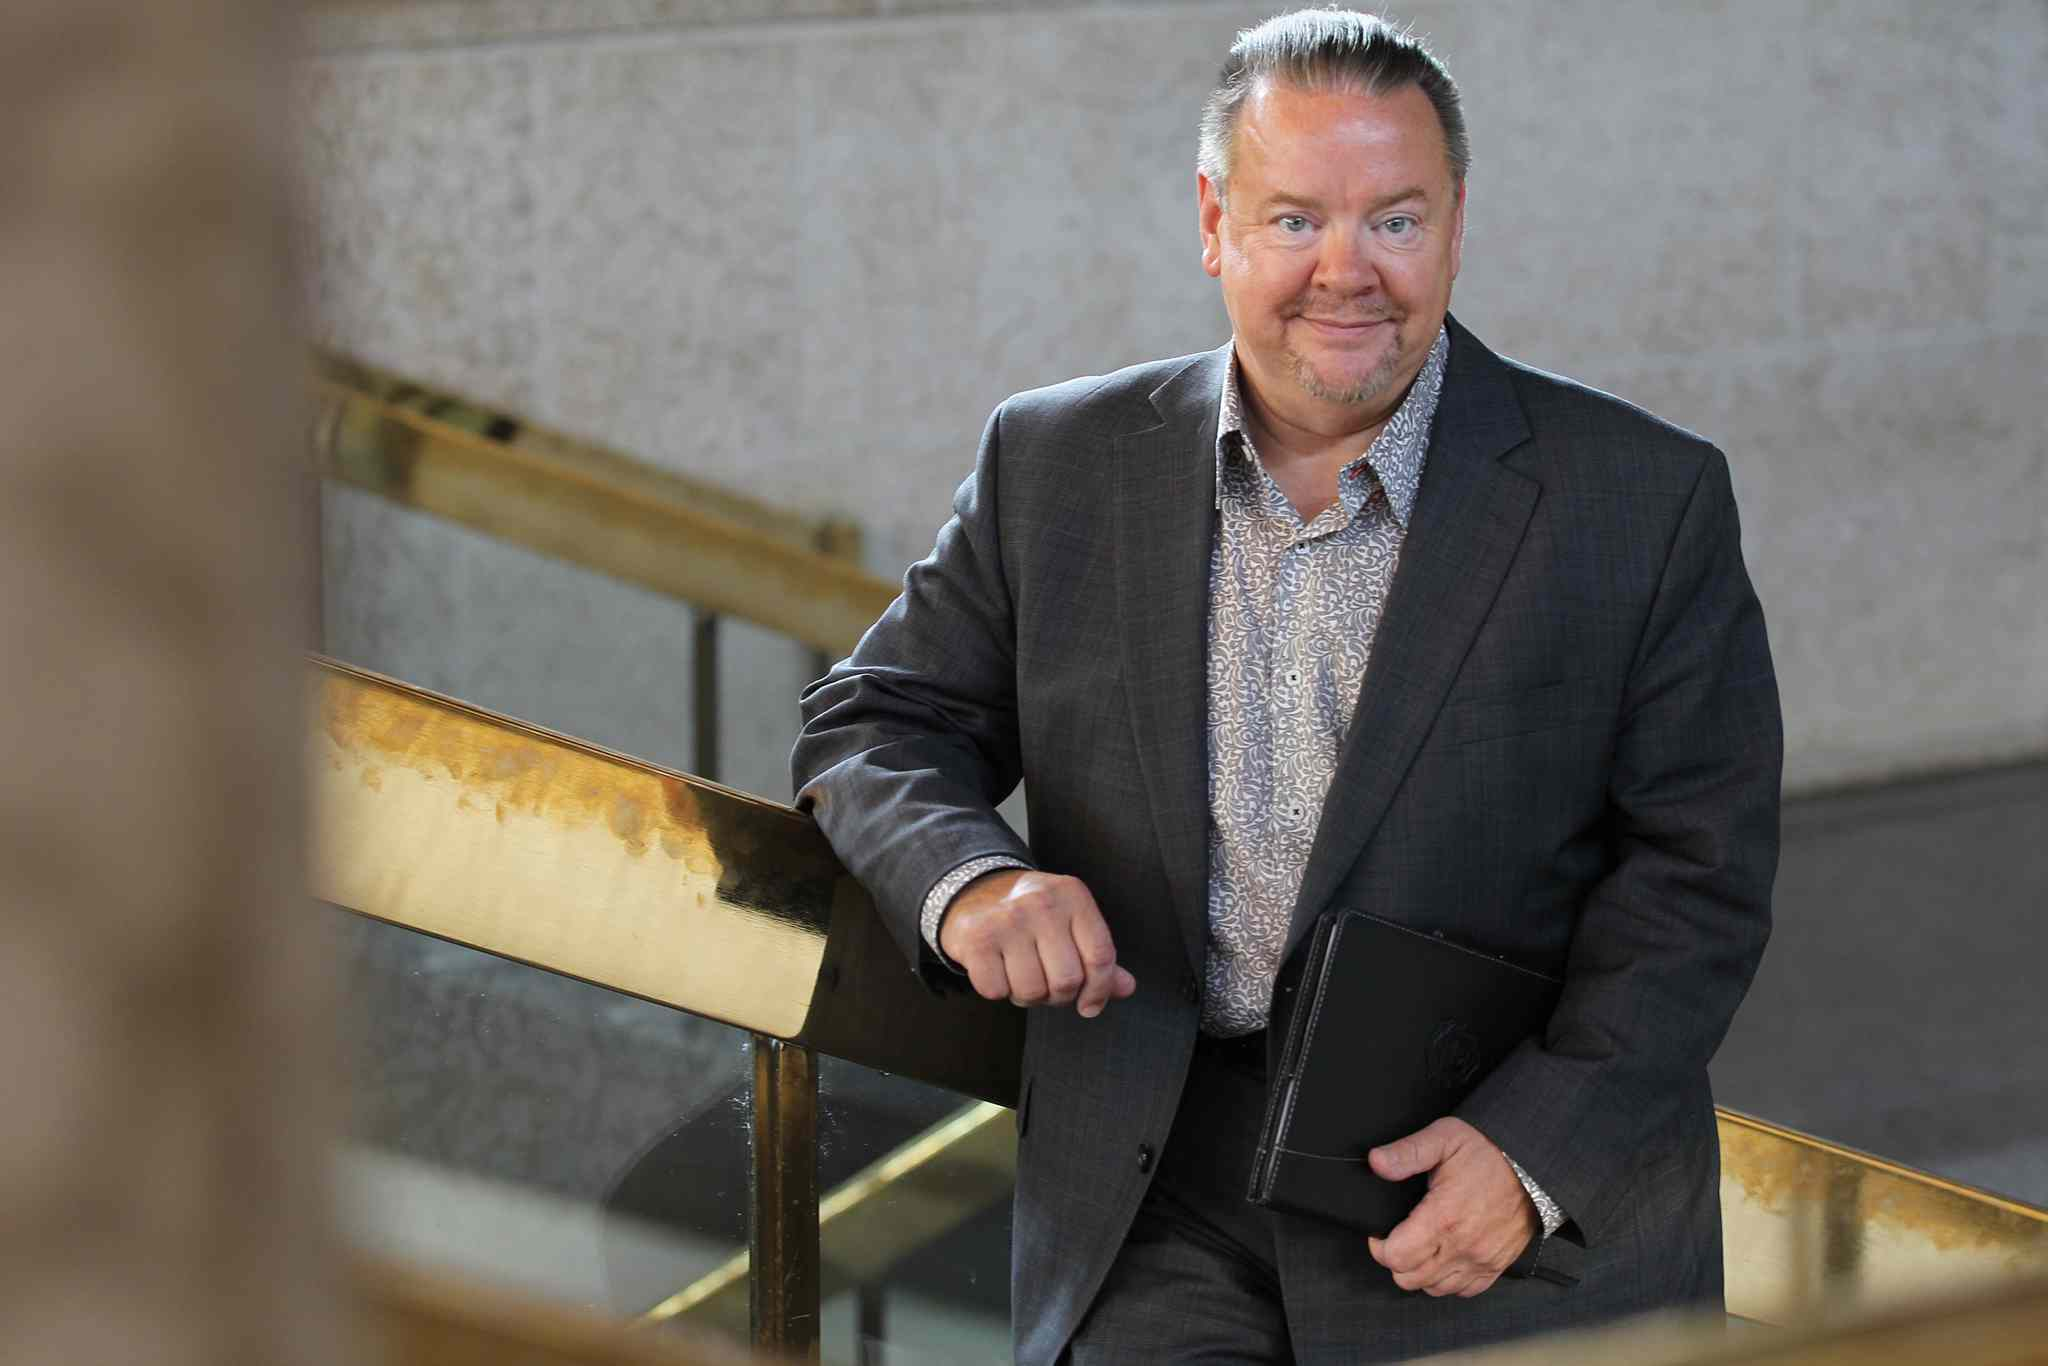 """I was very impressed with the level of education I received during that time and strongly believe it greatly influenced my life, especially my educational pursuits,"" says Winnipeg city clerk Richard Kachur."